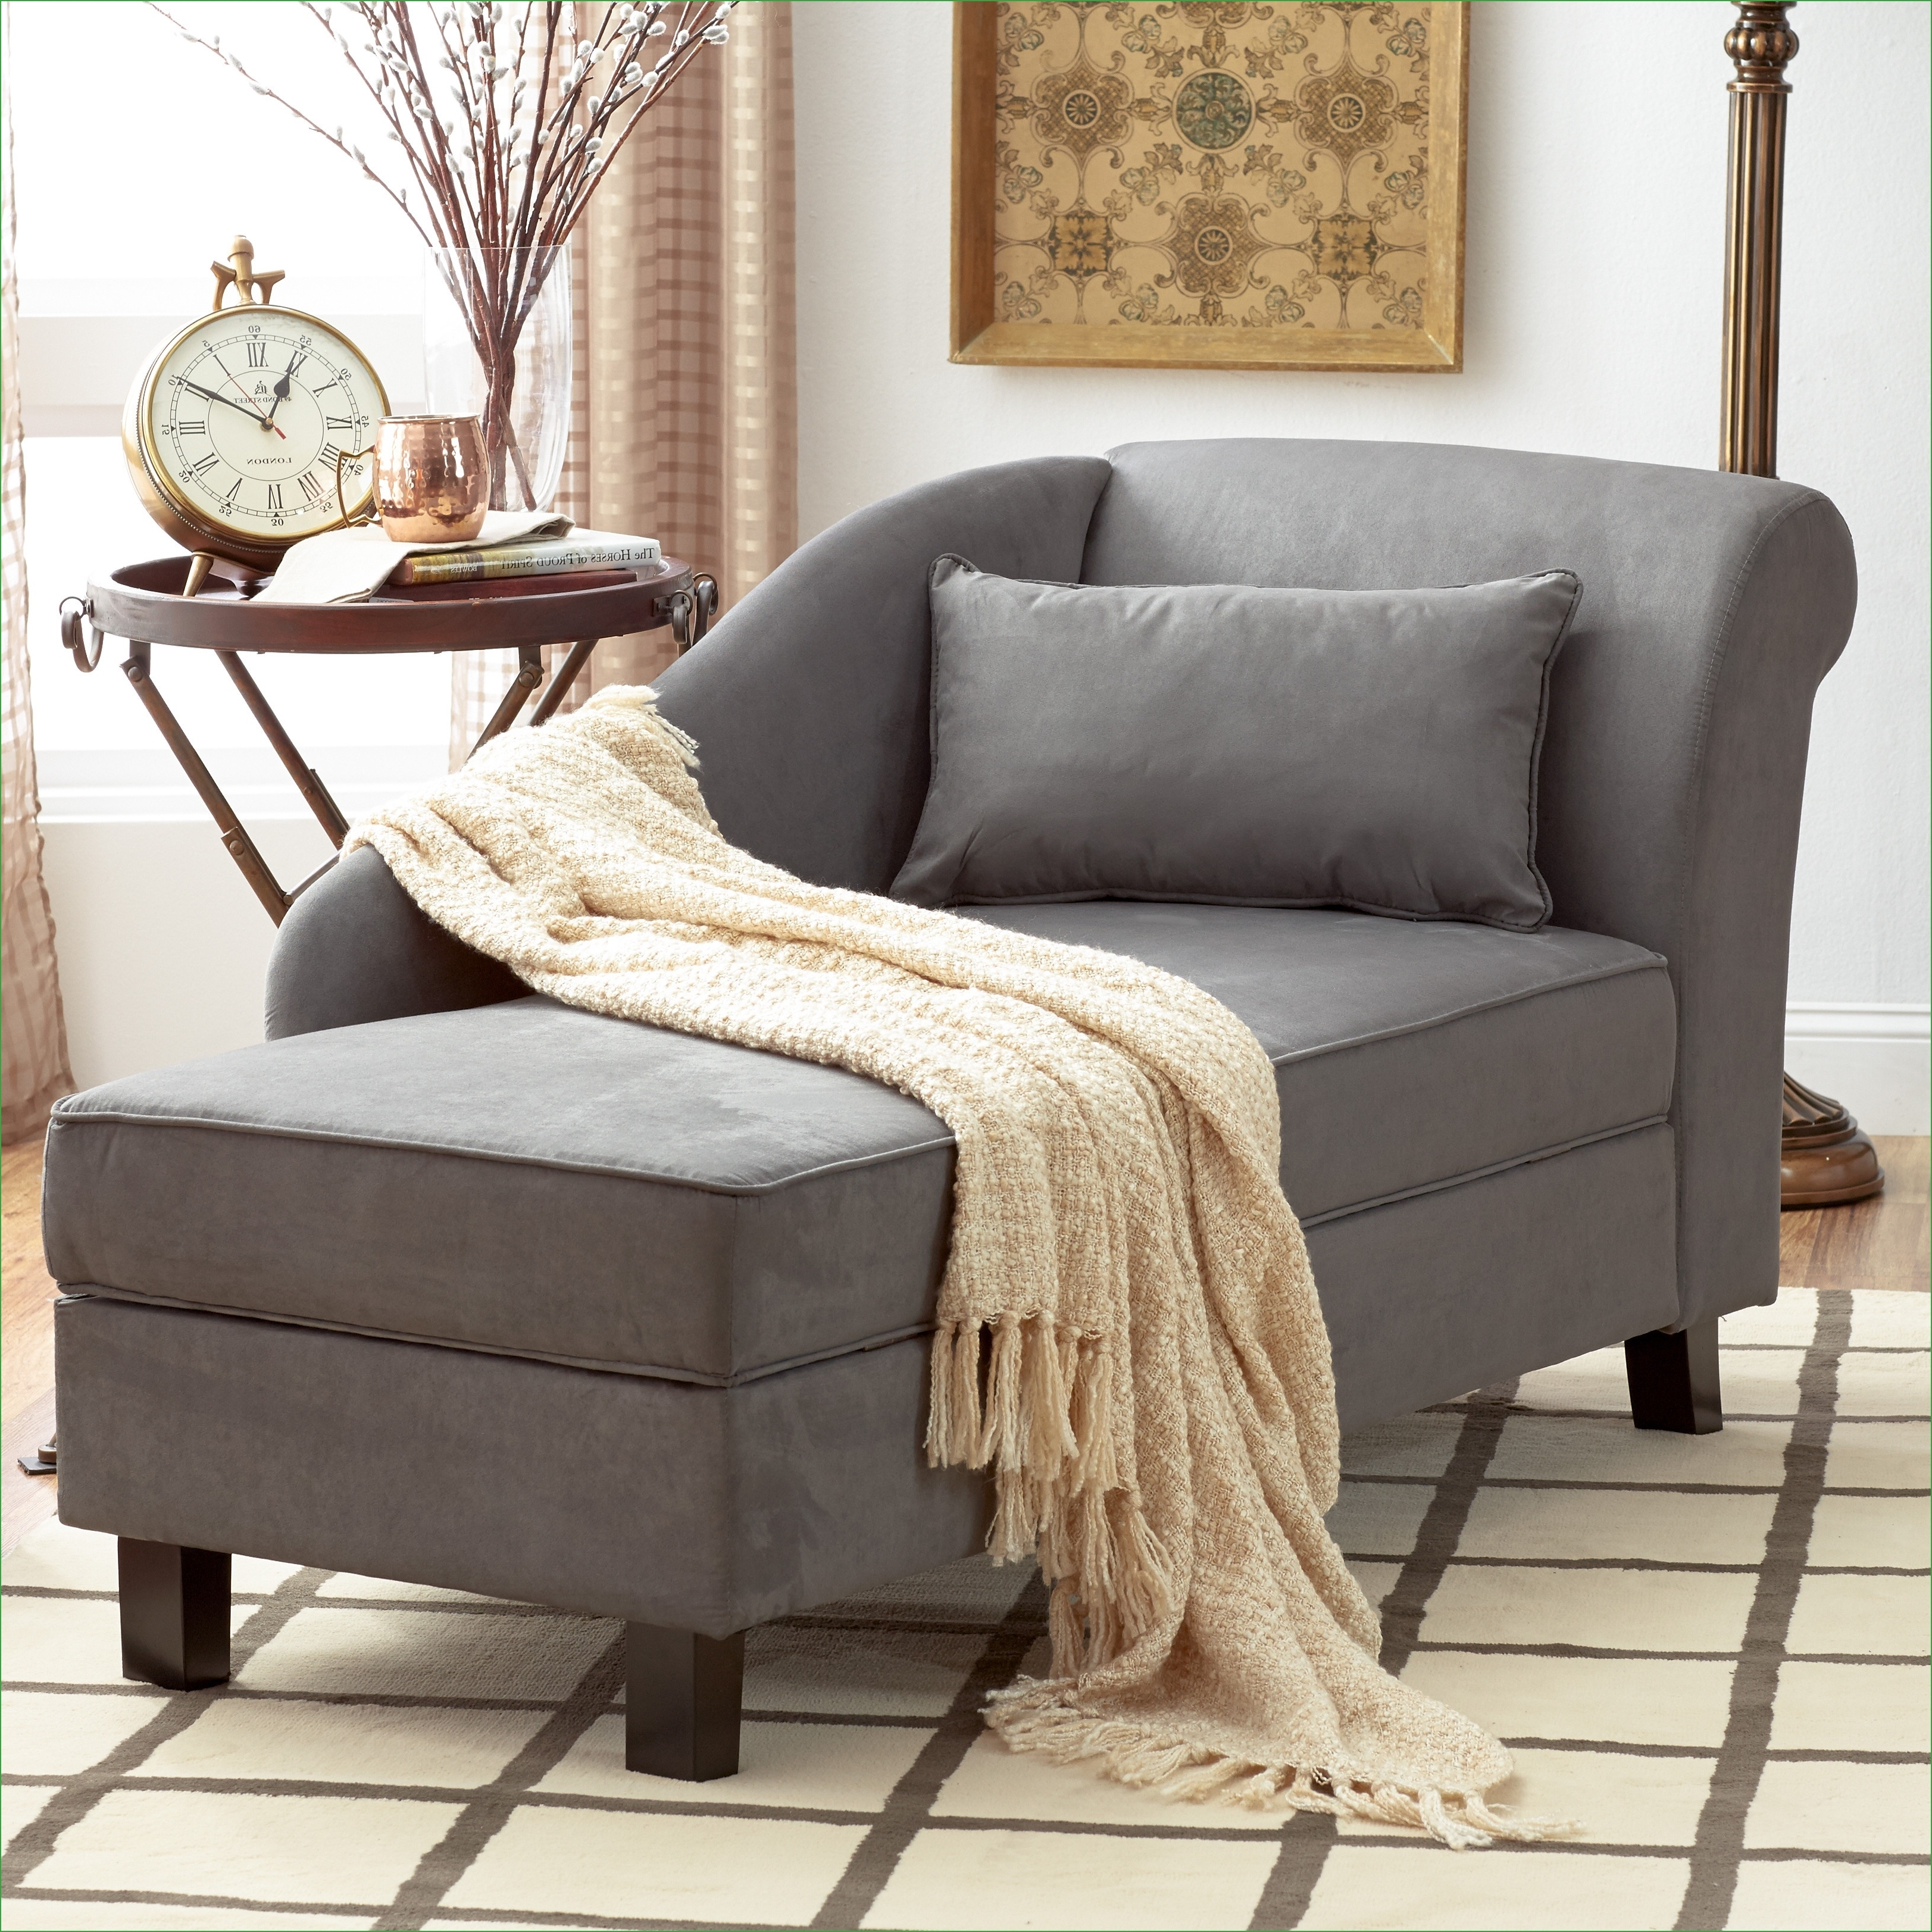 Well Liked Double Chaise Lounges For Living Room With Convertible Chair : Living Room Tufted Chaise Lounge Chair Gray (View 9 of 15)